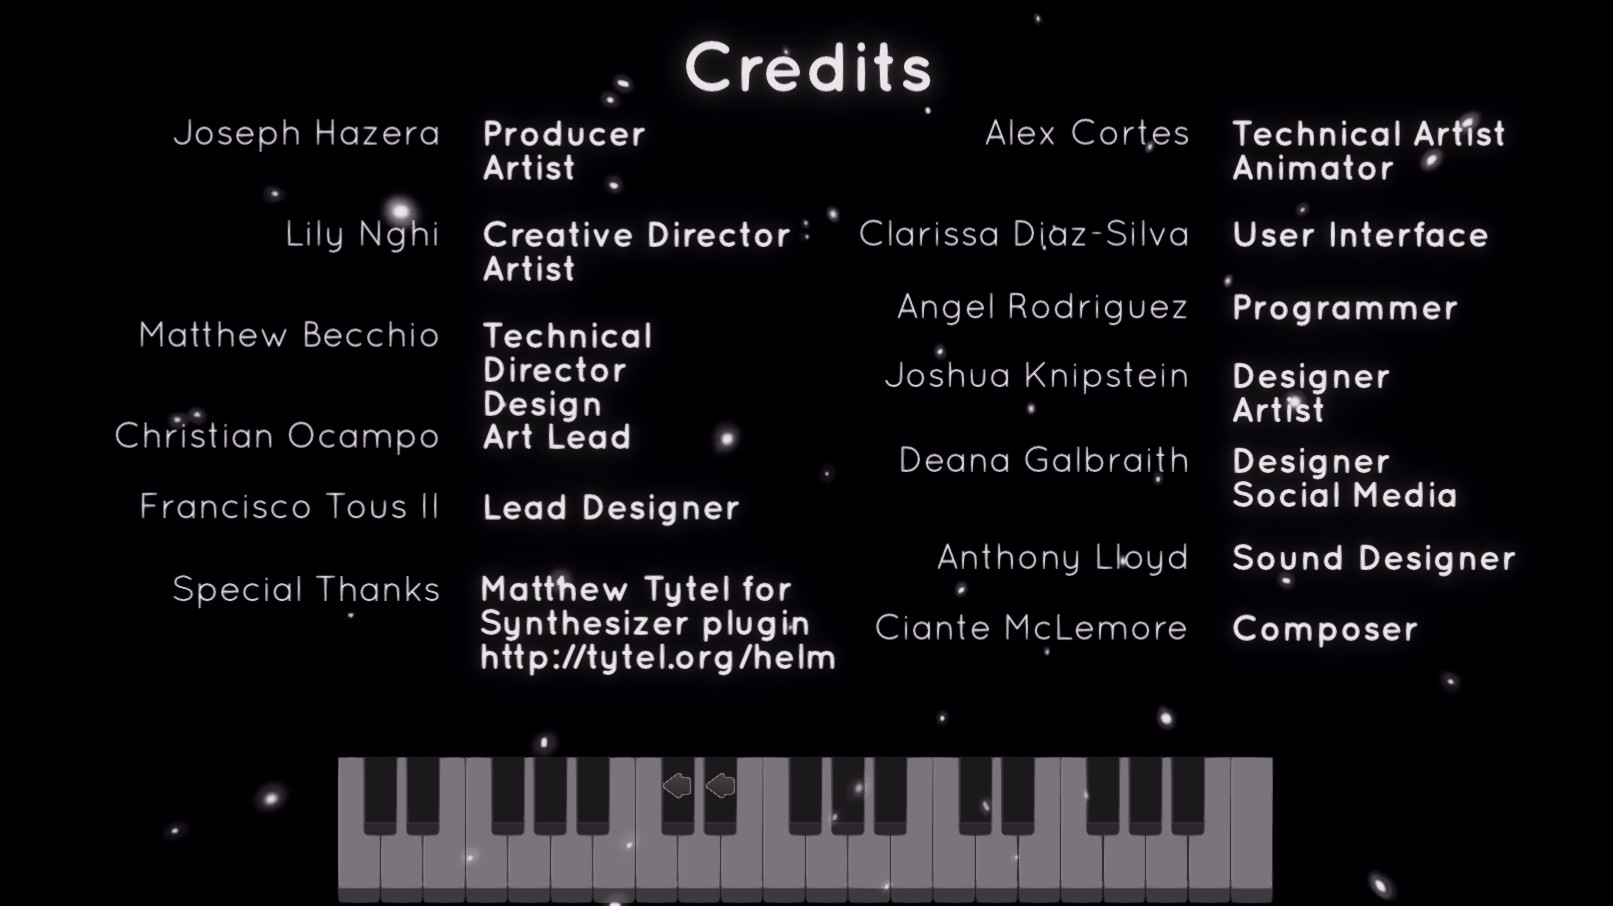 Credits Page. Shows everyone who worked on the game and their roles.